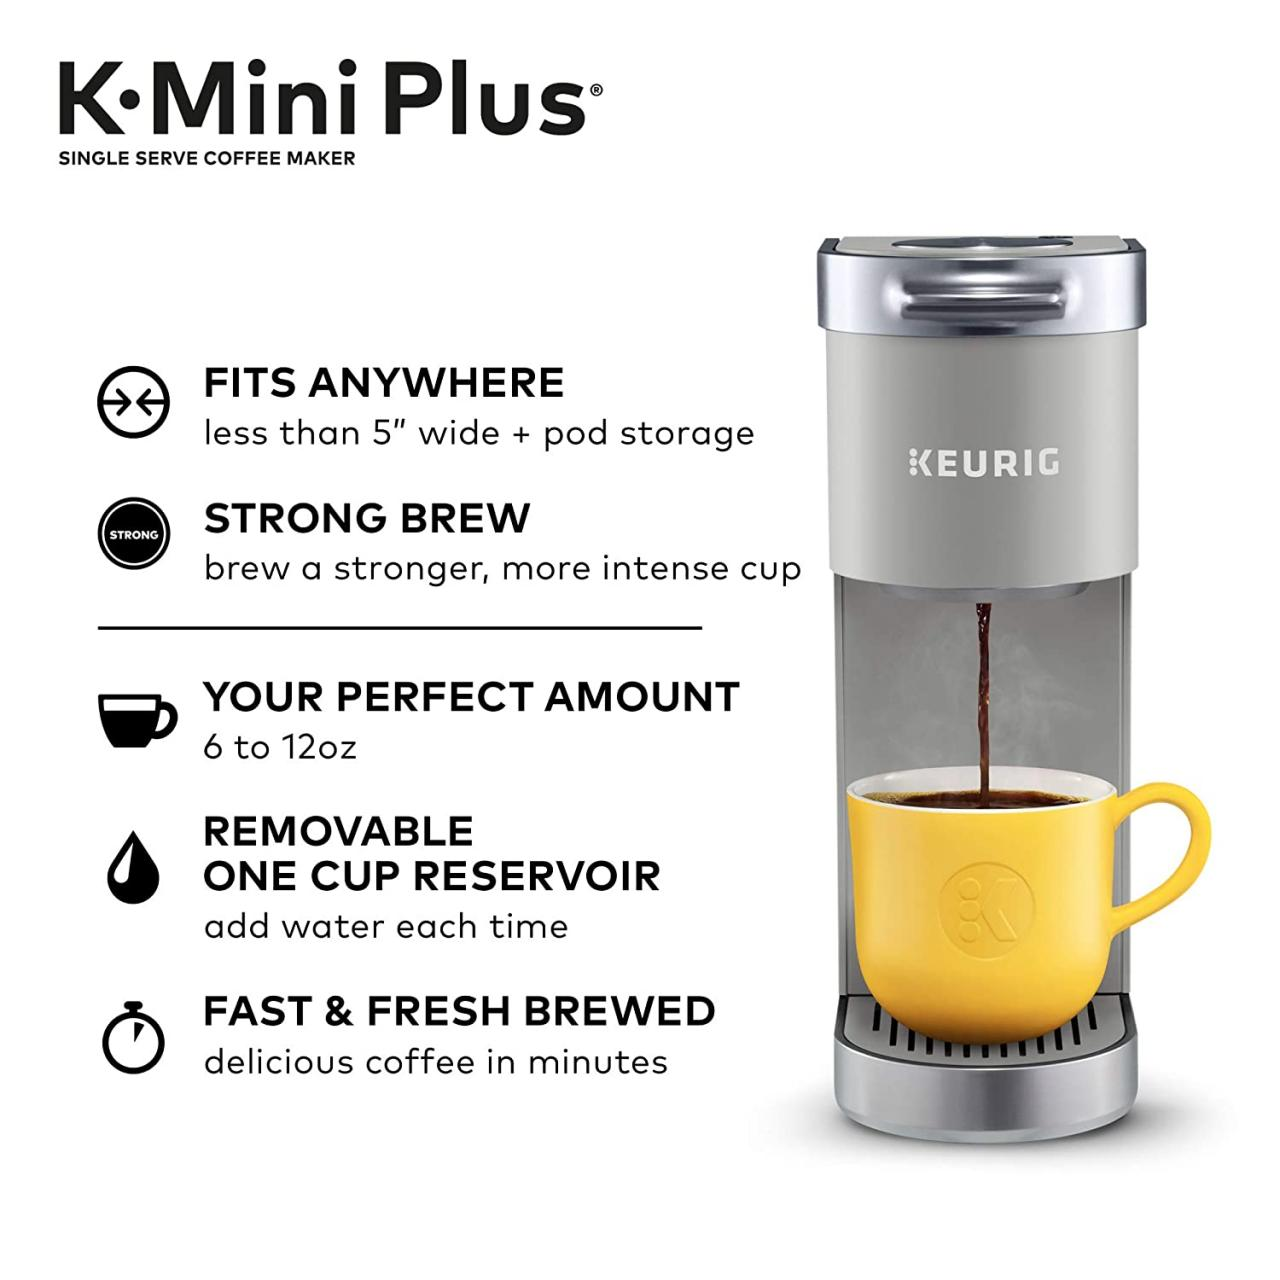 floor price Keurig K-Mini Plus Single Serve K-Cup Pod Coffee Maker, with 6  to 12oz Brew Size, Stores up to 9 K-Cup Pods, Travel Mug Friendly: Kitchen  & Dining high-quality merchandise and